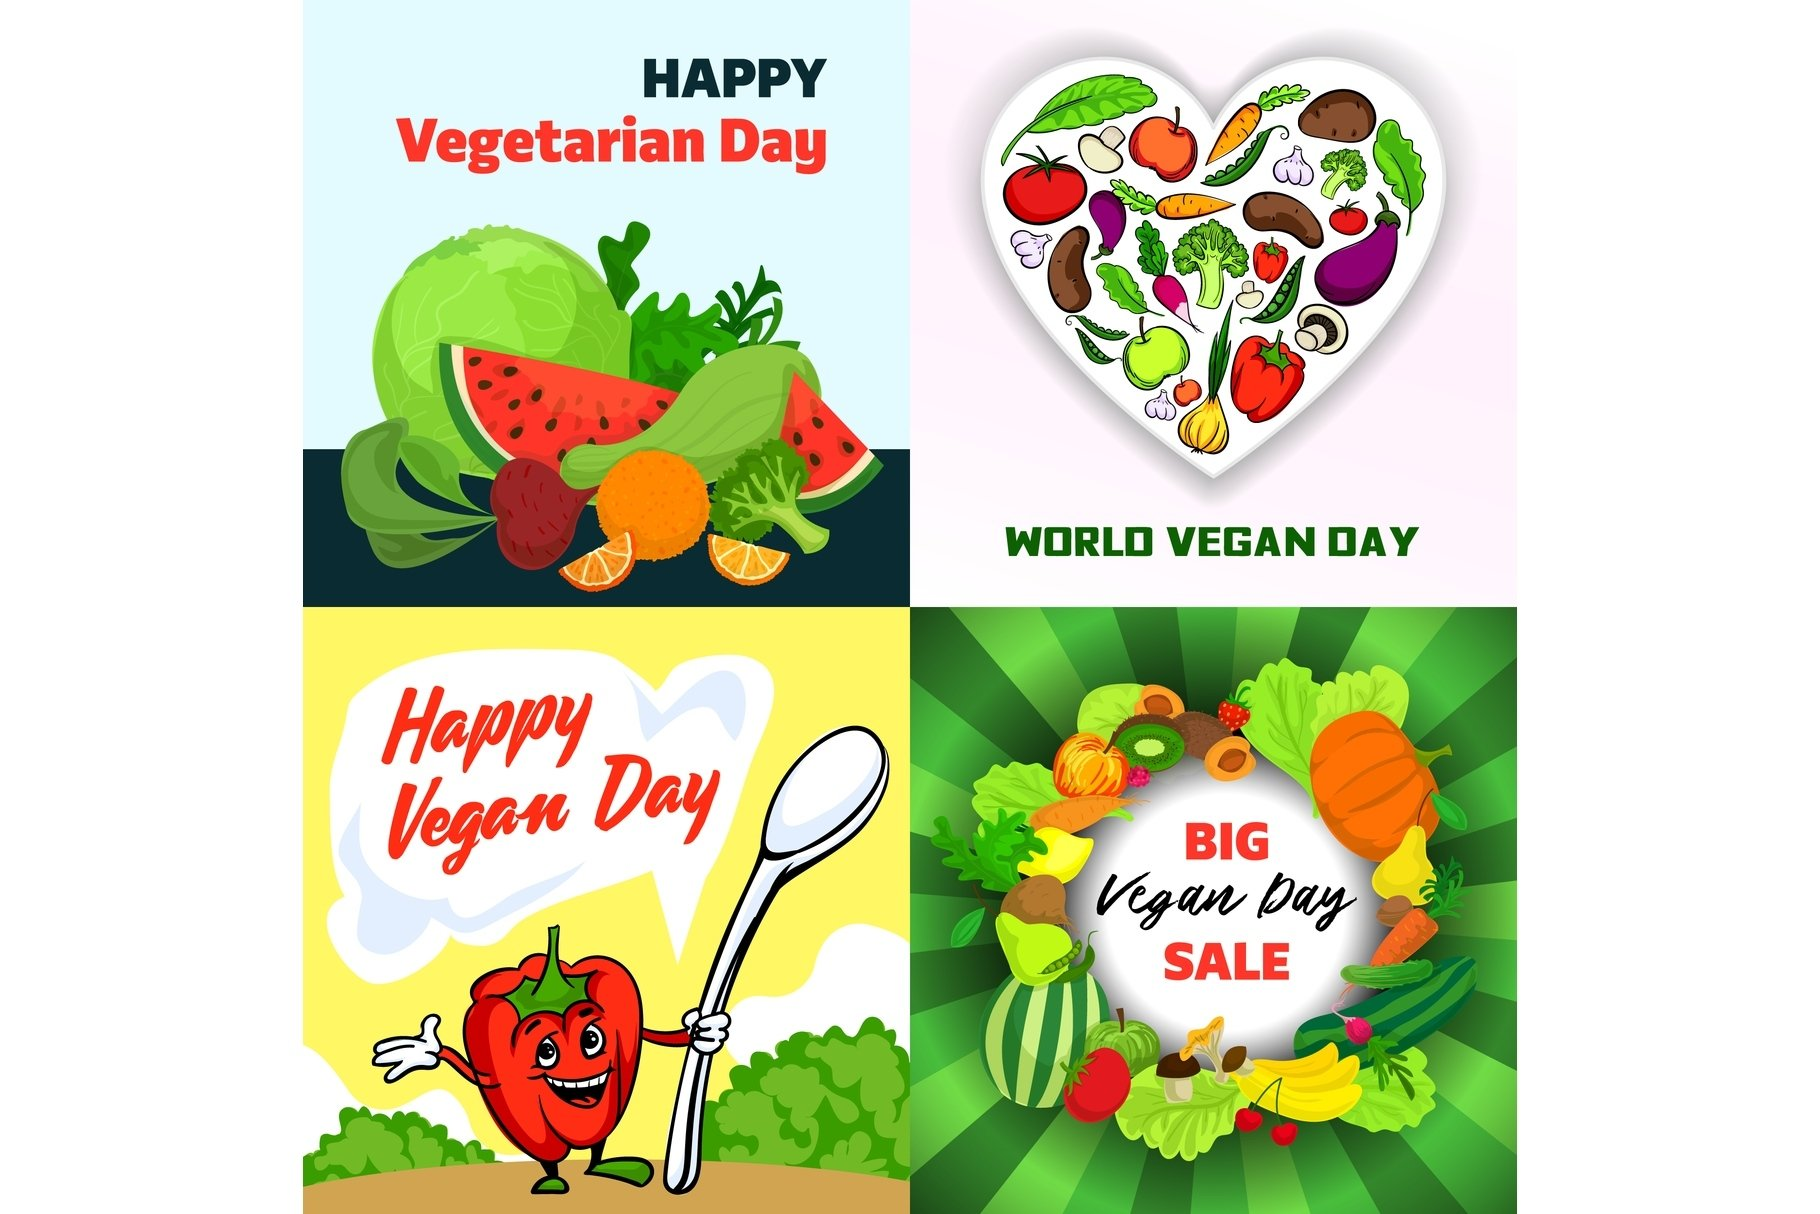 Vegan Day Banner Set Cartoon Style 550462 Illustrations Design Bundles